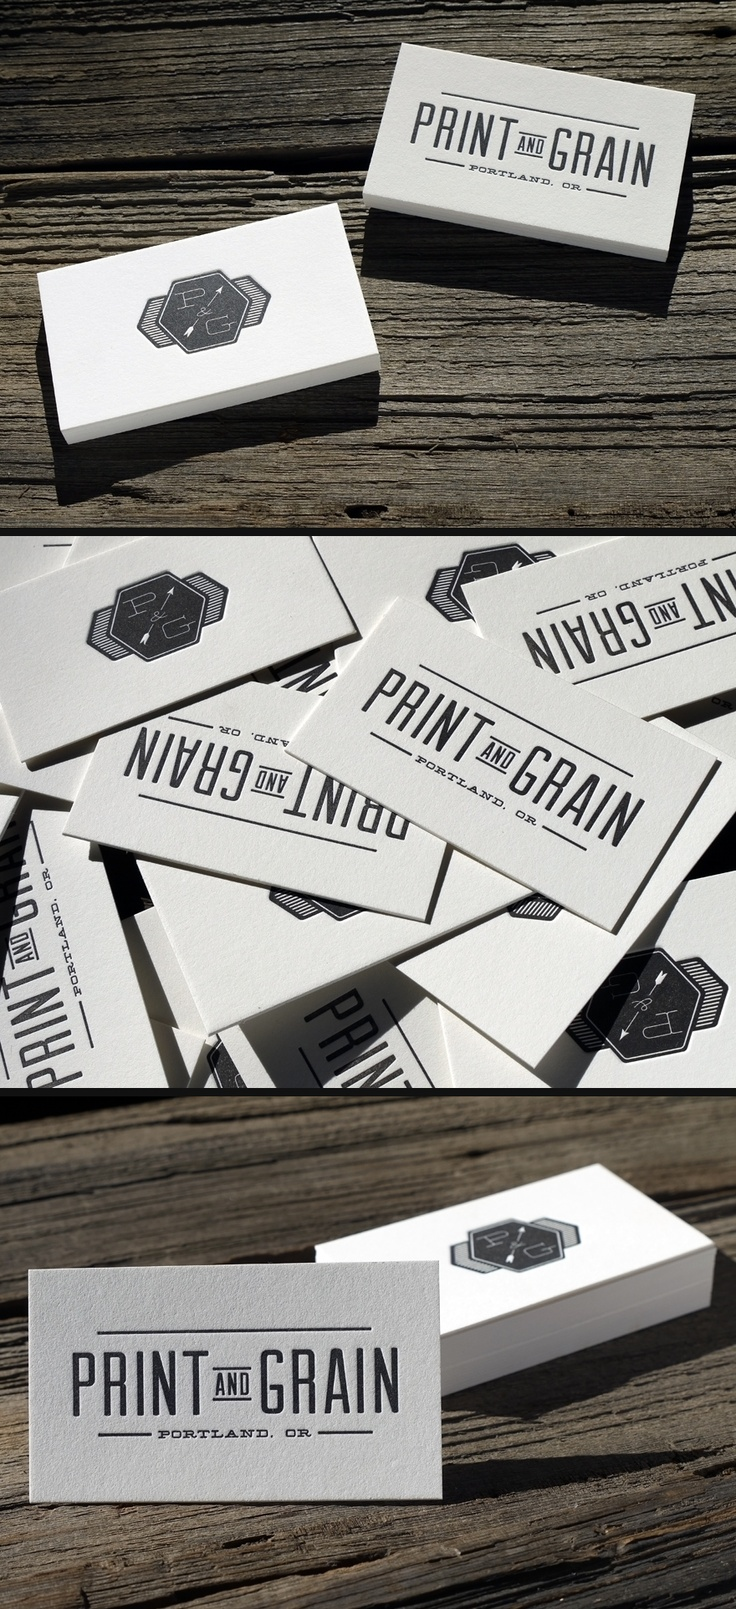 27 best business cards images on pinterest embossed business cards designersof new letterpress business cards for printgrain reheart Gallery